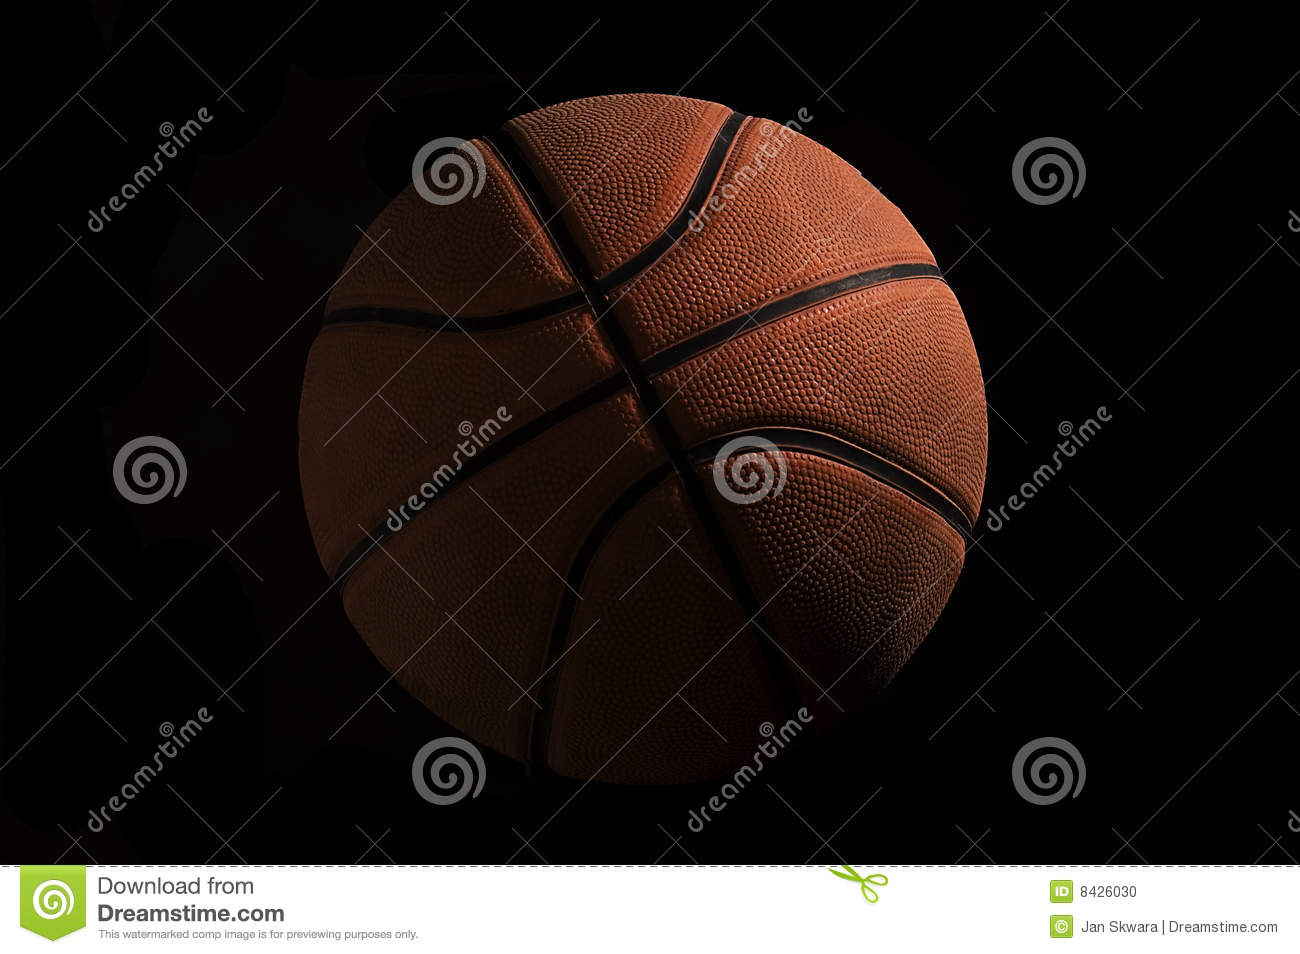 Basketball over black background